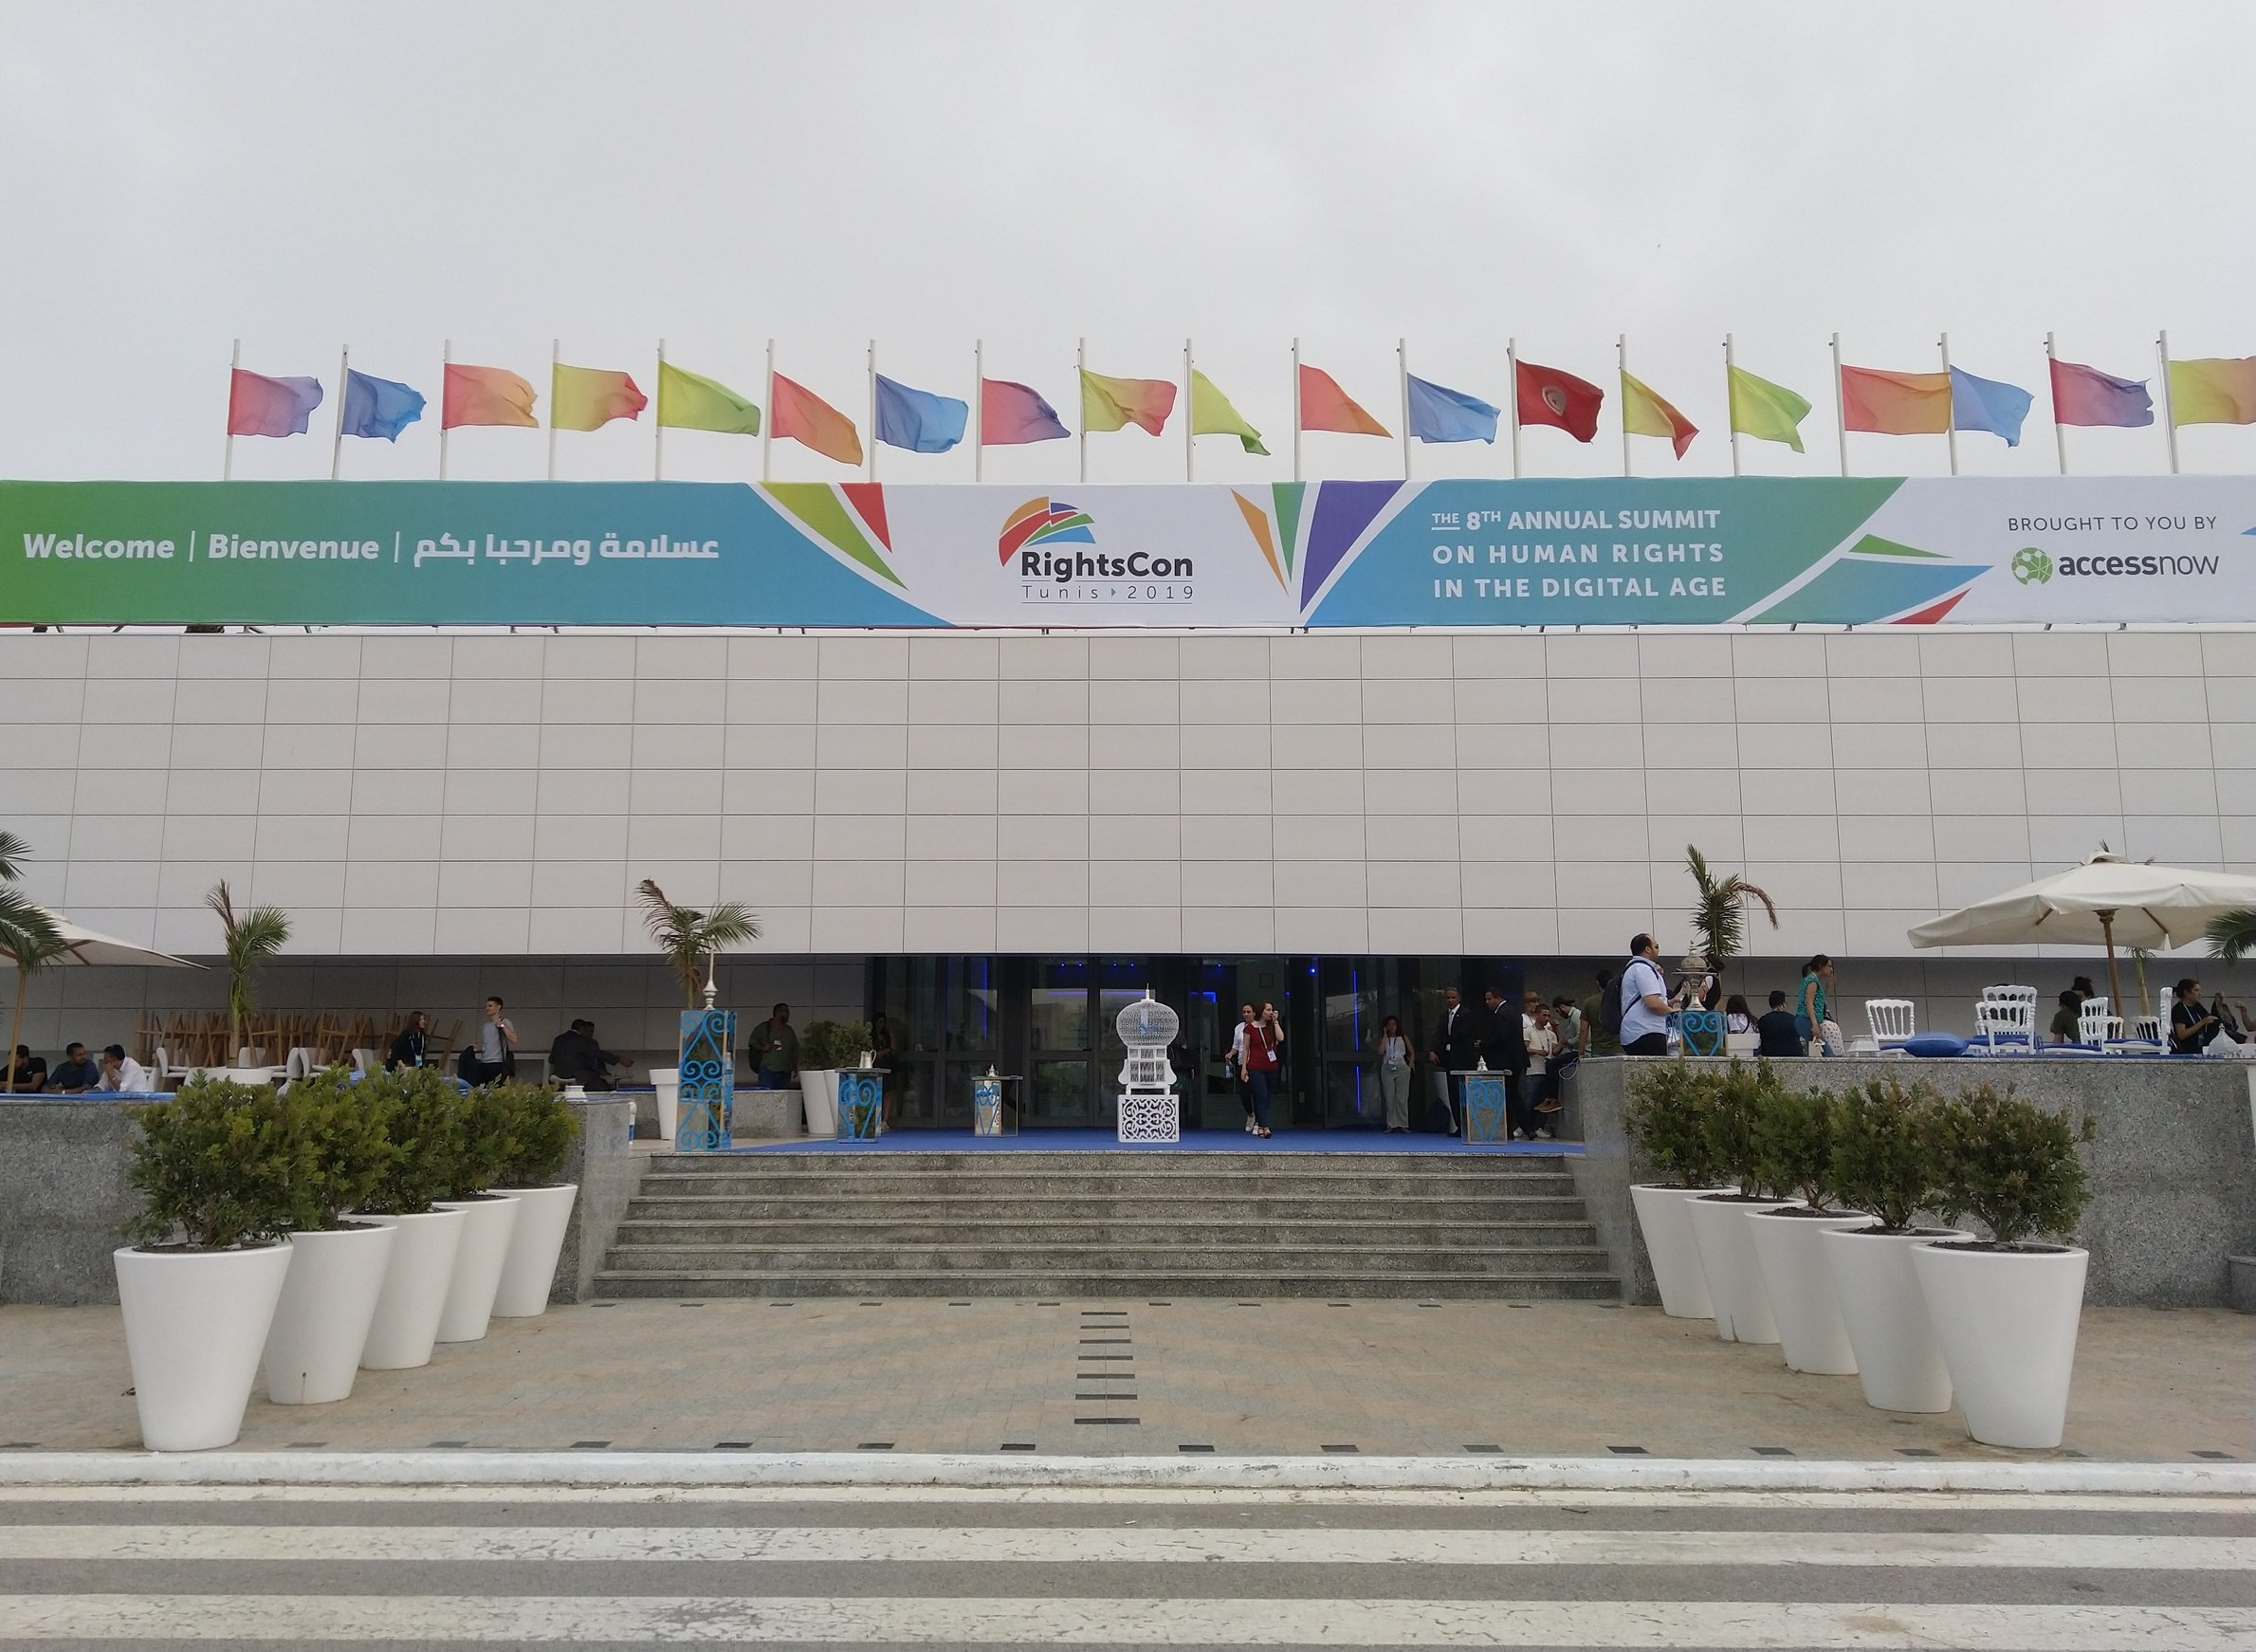 """Picture showing the main entrance of the RightsCon conference venue, with a big banner over it stating """"RightsCon Tunis 2019"""" and """"8th annual summit on human rights in the digital age"""". Flags on top in various colors, as well as a Tunisian flag. Photo: Private/Lisa-Marie M. Selvik."""